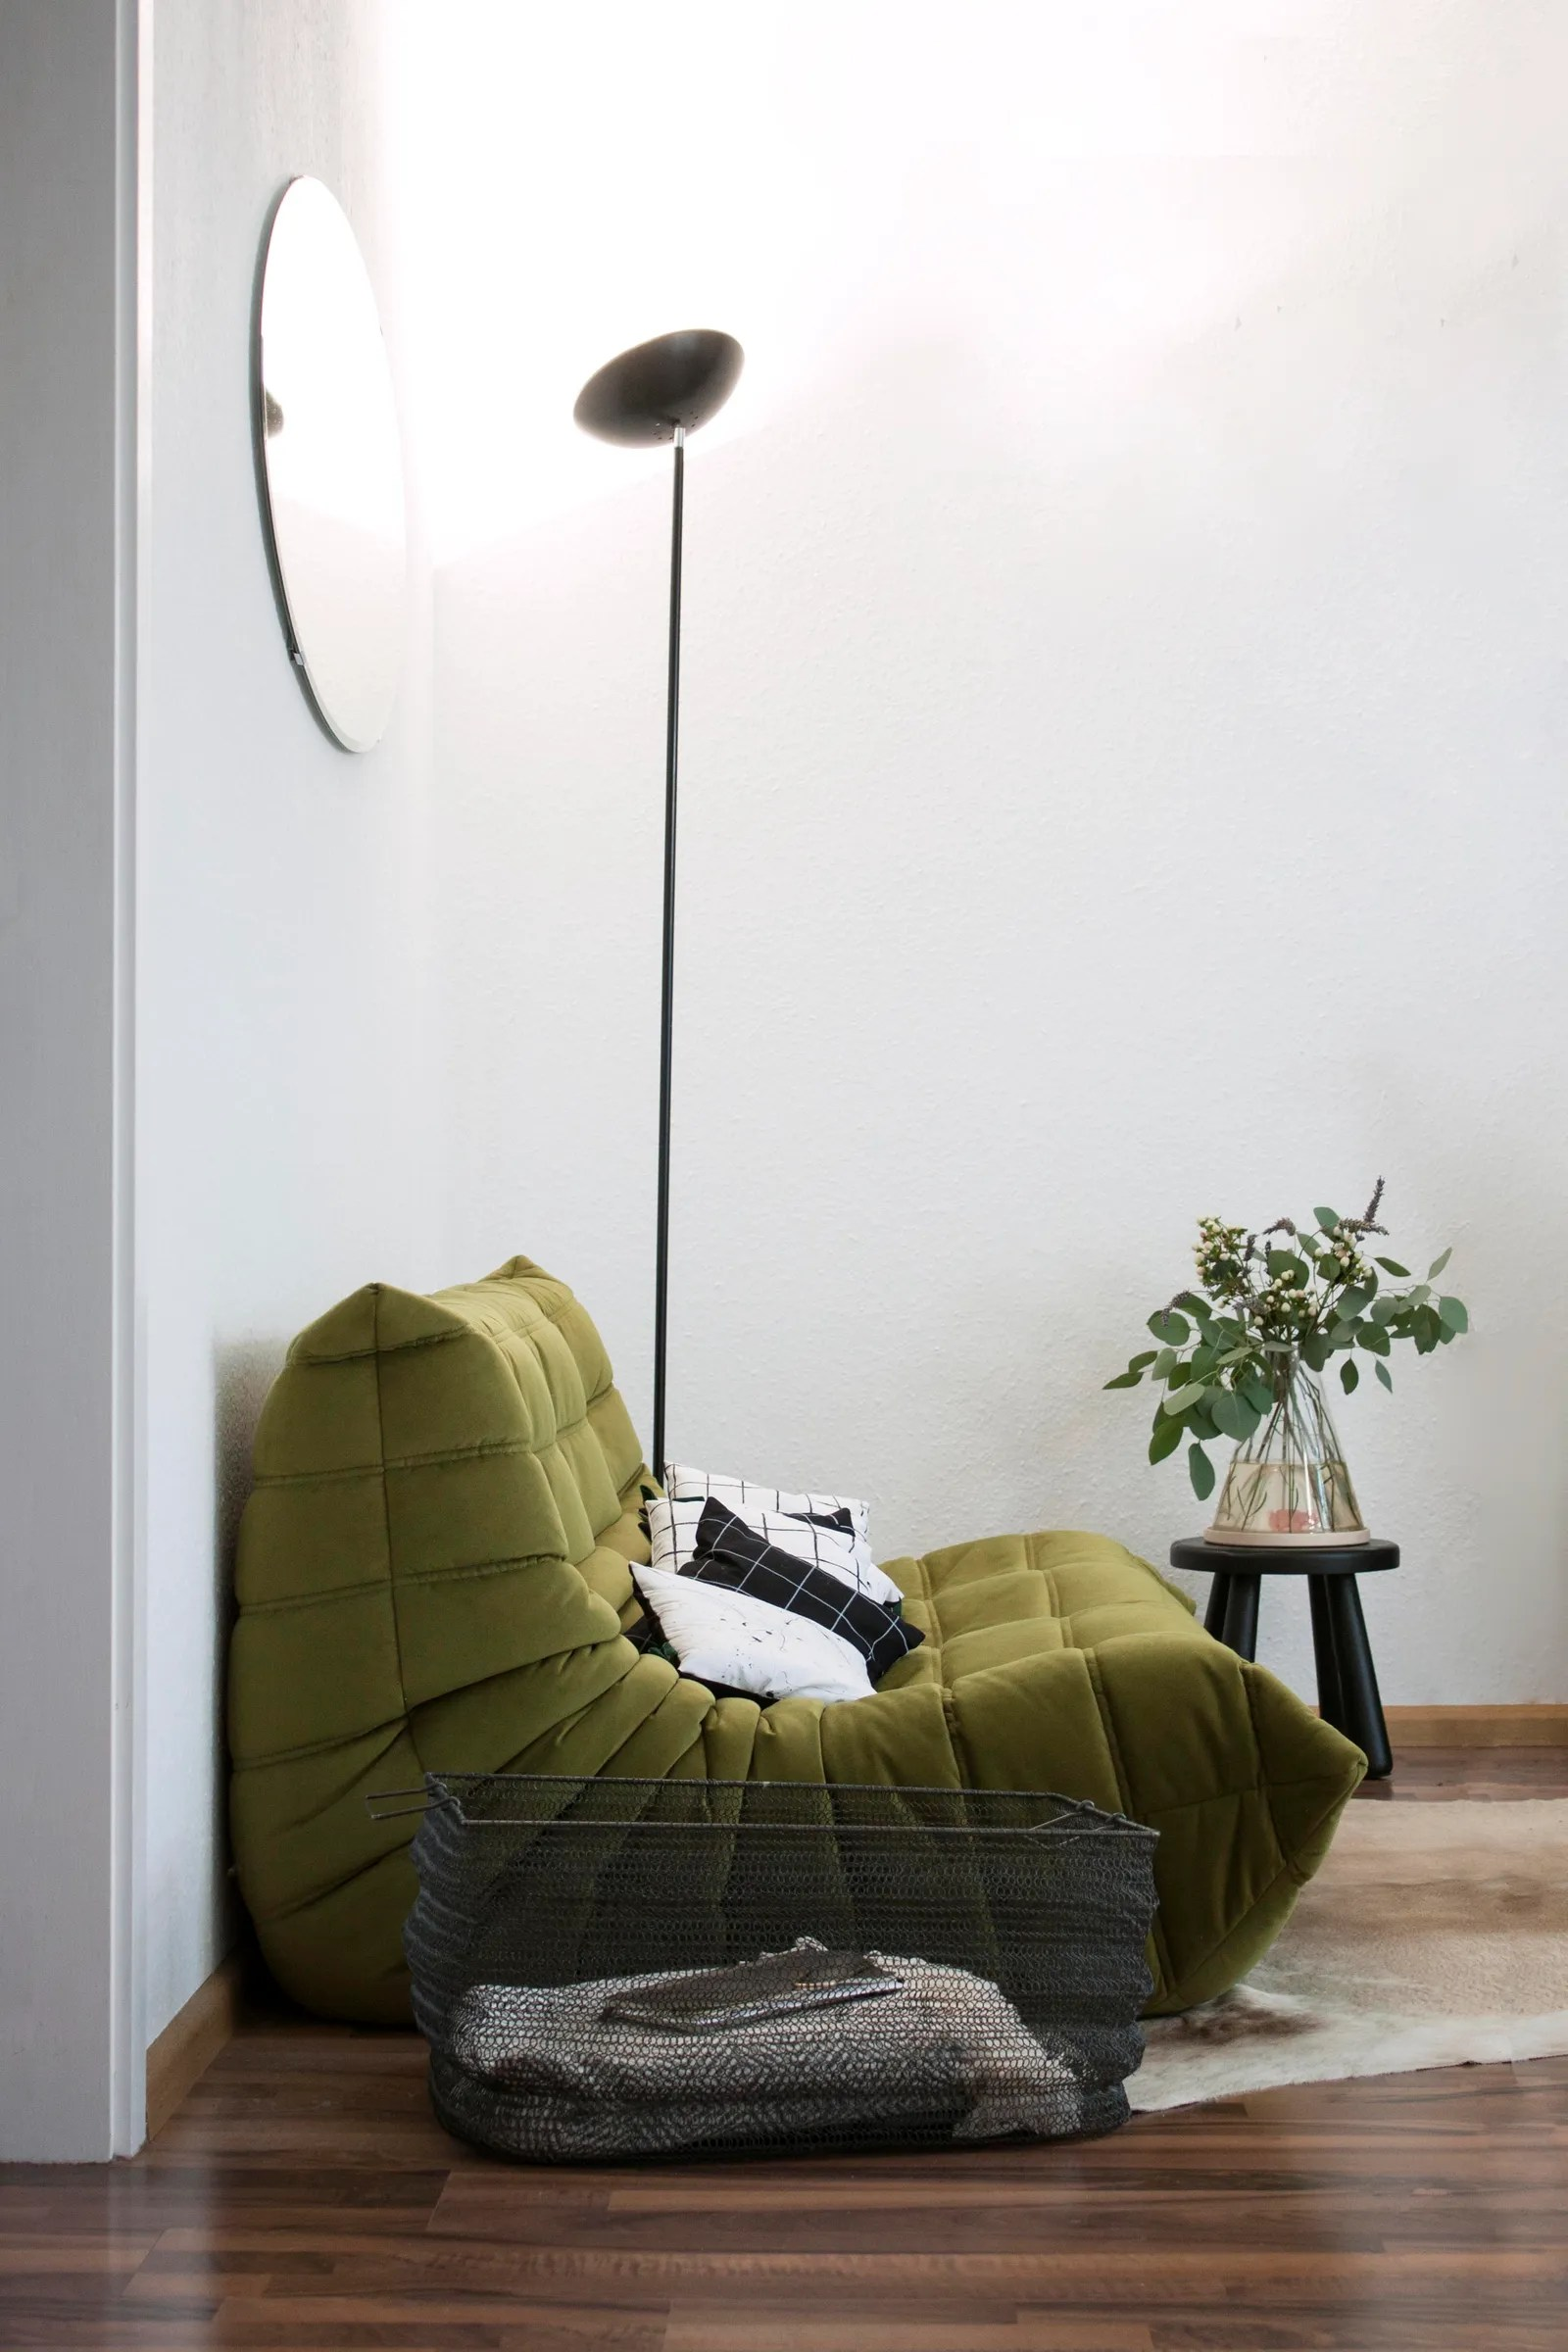 Ligne Roset Freiburg How Zwei Design Made A Cozy Clutter Free Home In 481 Square Feet